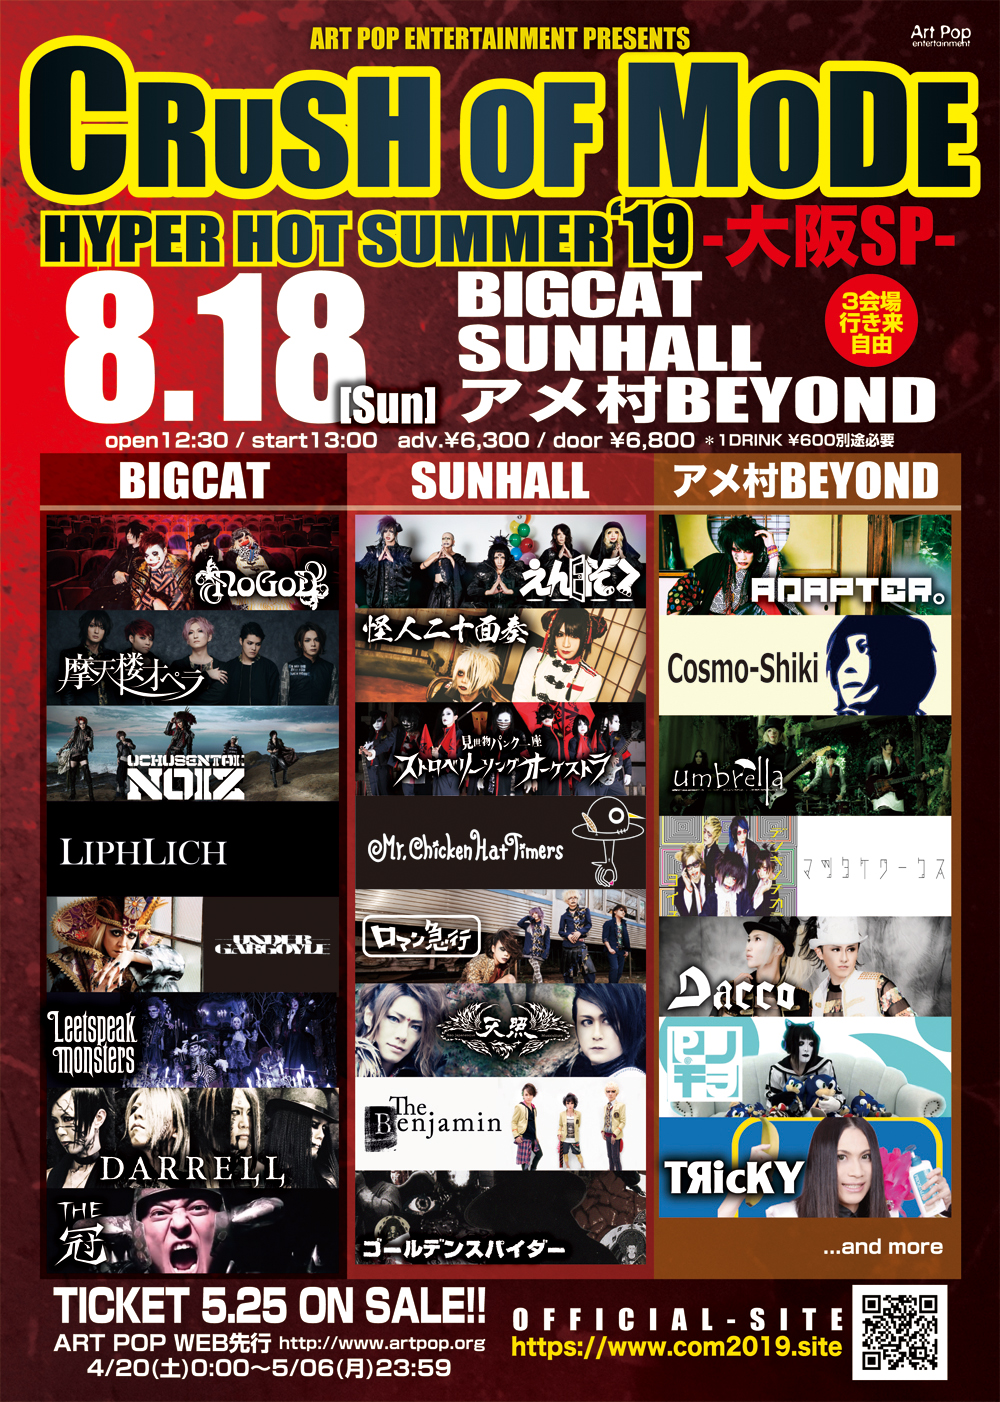 ART POP ENTERTAINMENT PRESENTS	CRUSH OF MODE-HYPER HOT SUMMER'19-大阪SP